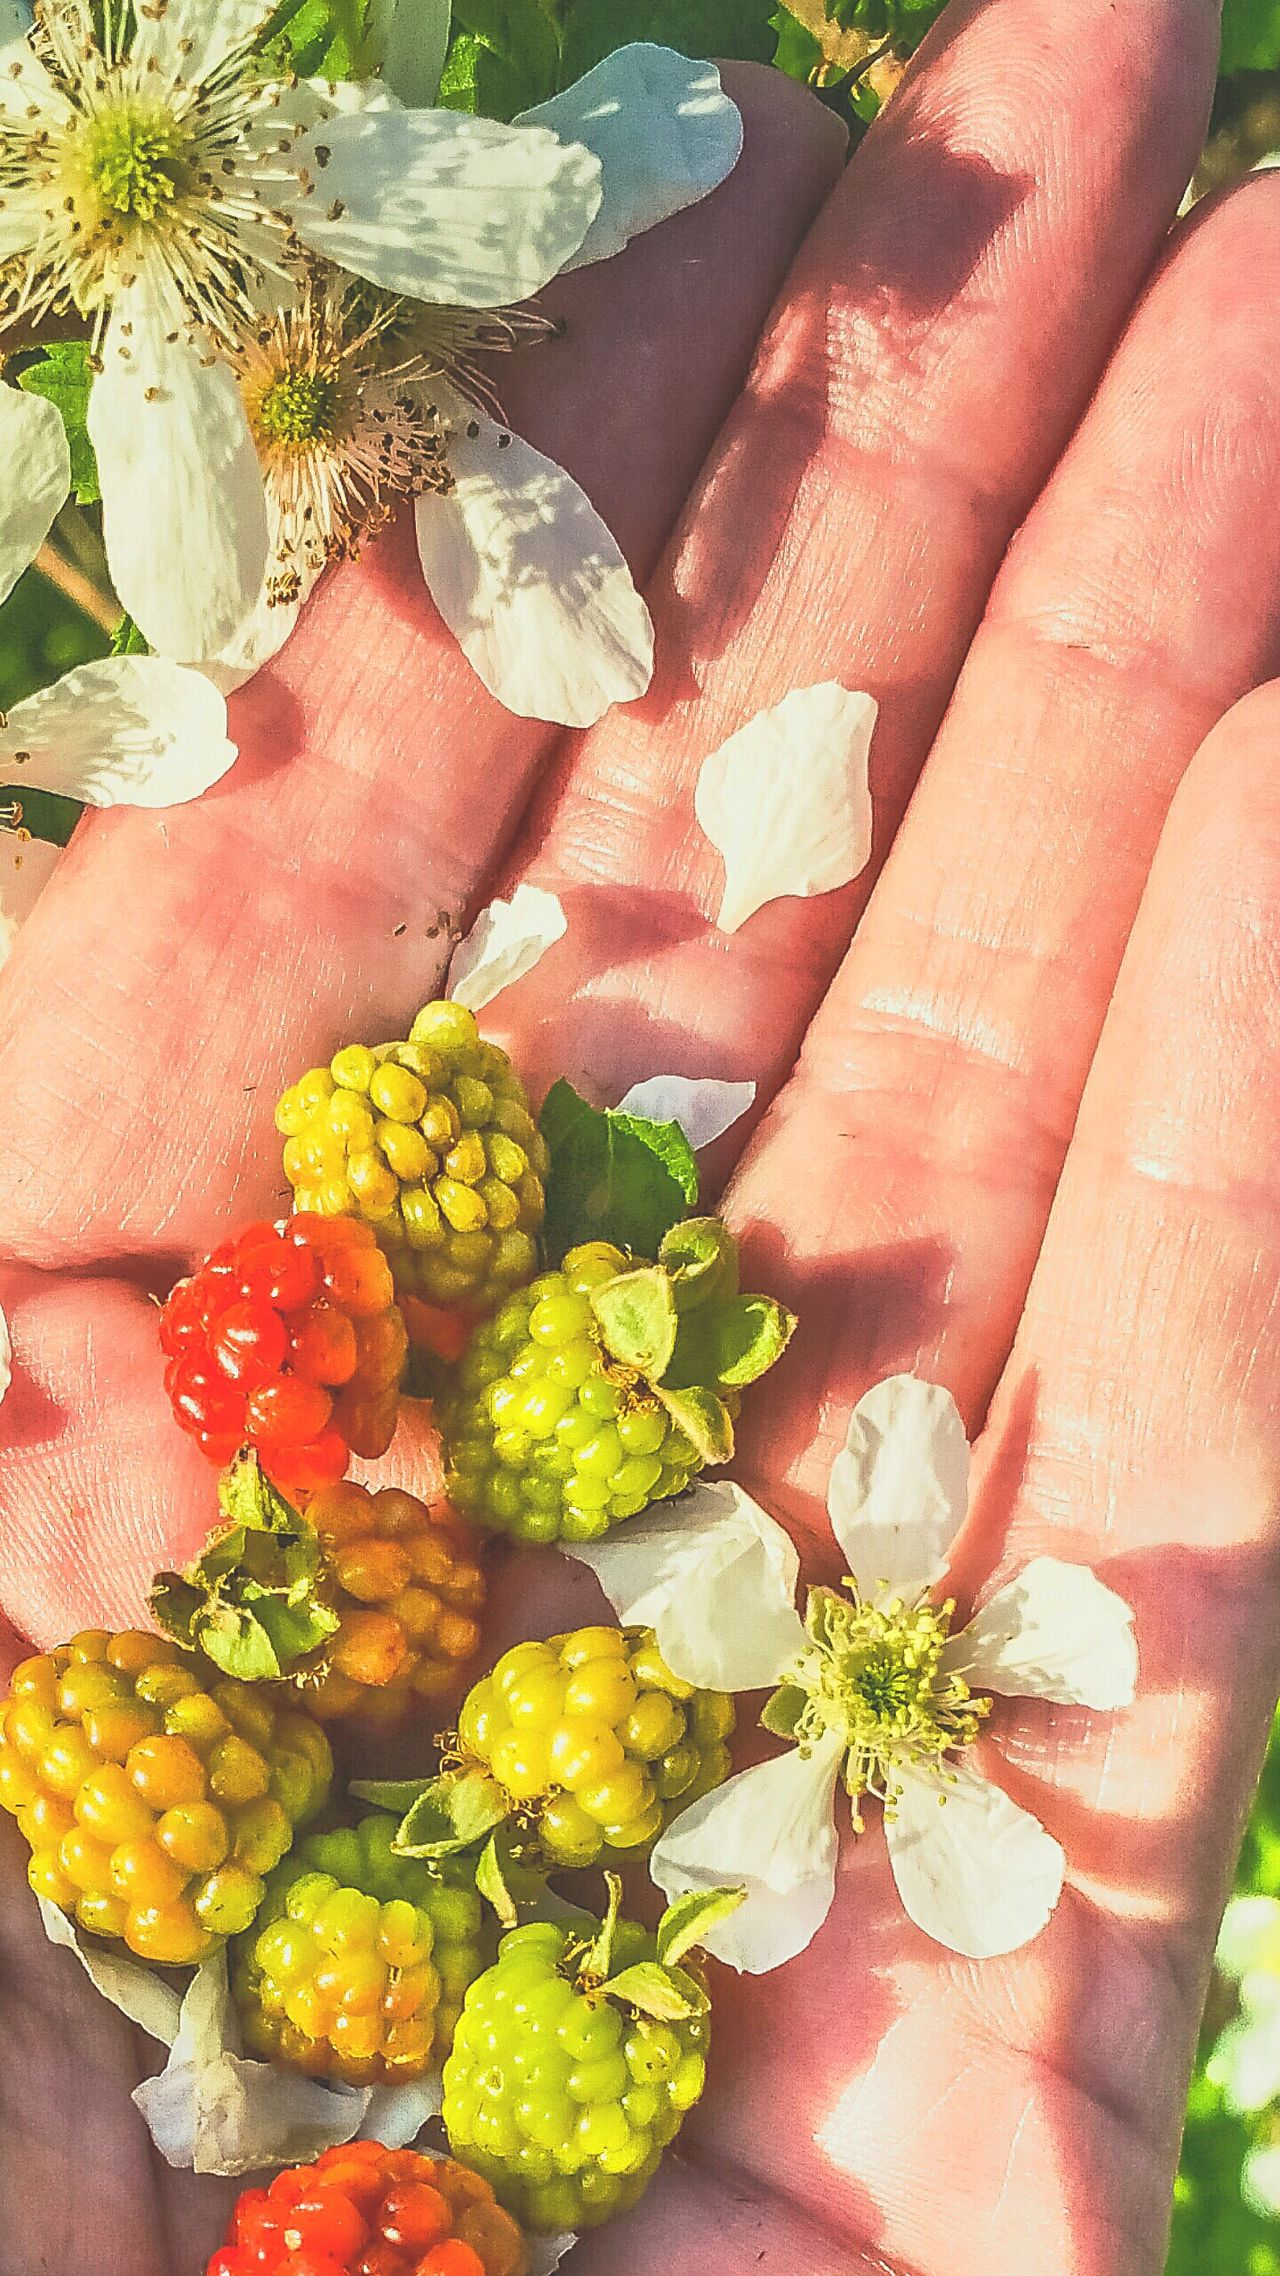 Human Hand Close-up Flower Head Fruit Healthy Eating Freshness Outdoors Flower Food Leaf Day Nature Wild Bunch Ready-to-eat Berry Fruit Dew Berries Variation Wild Blackberries Personal Perspective Growth High Angle View Blackberry Group Women Visual Feast